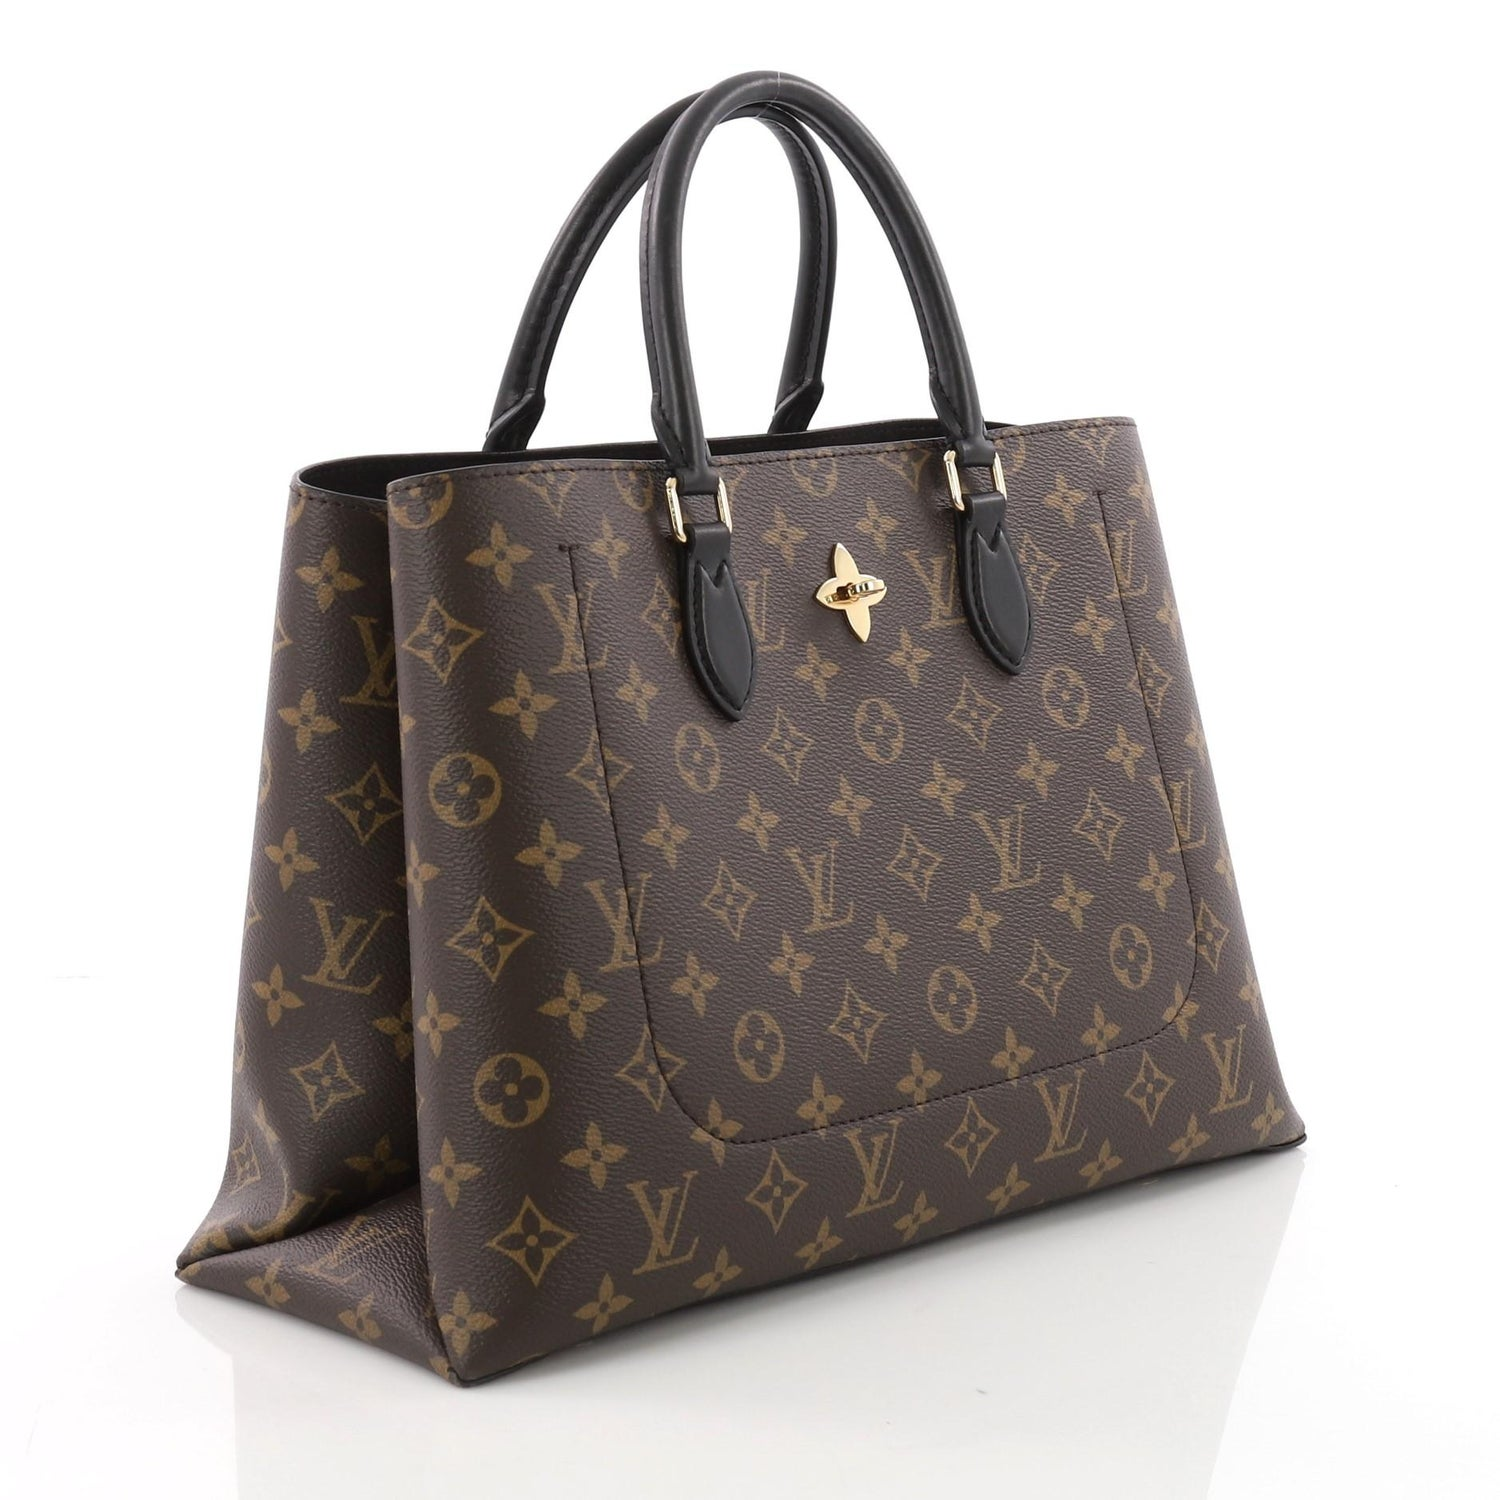 74969b3f937be Louis Vuitton Flower Tote Monogram Canvas at 1stdibs